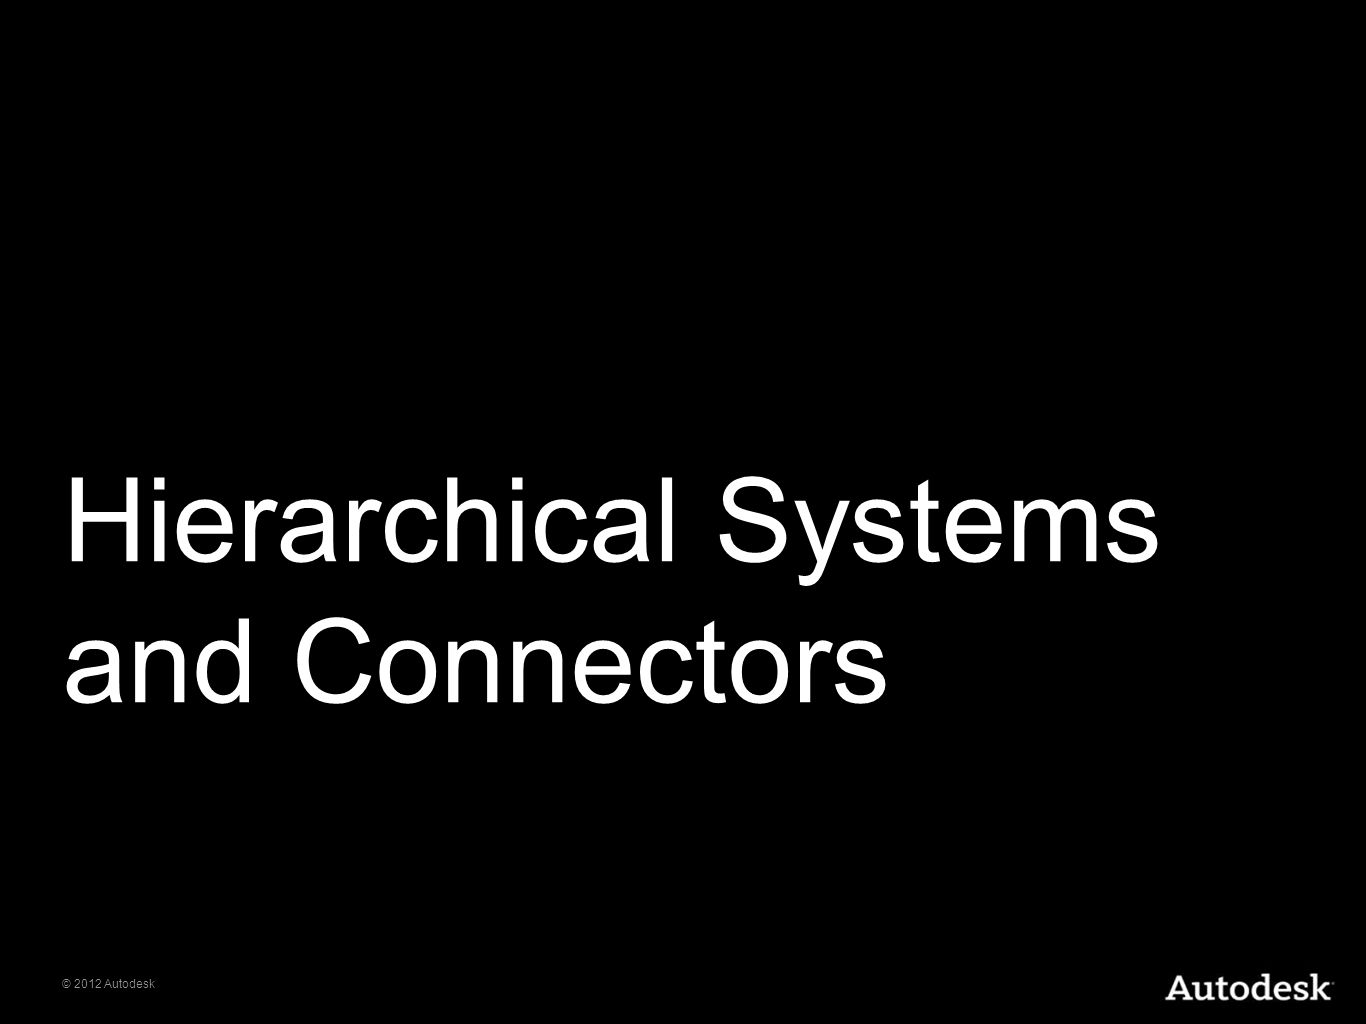 Hierarchical Systems and Connectors